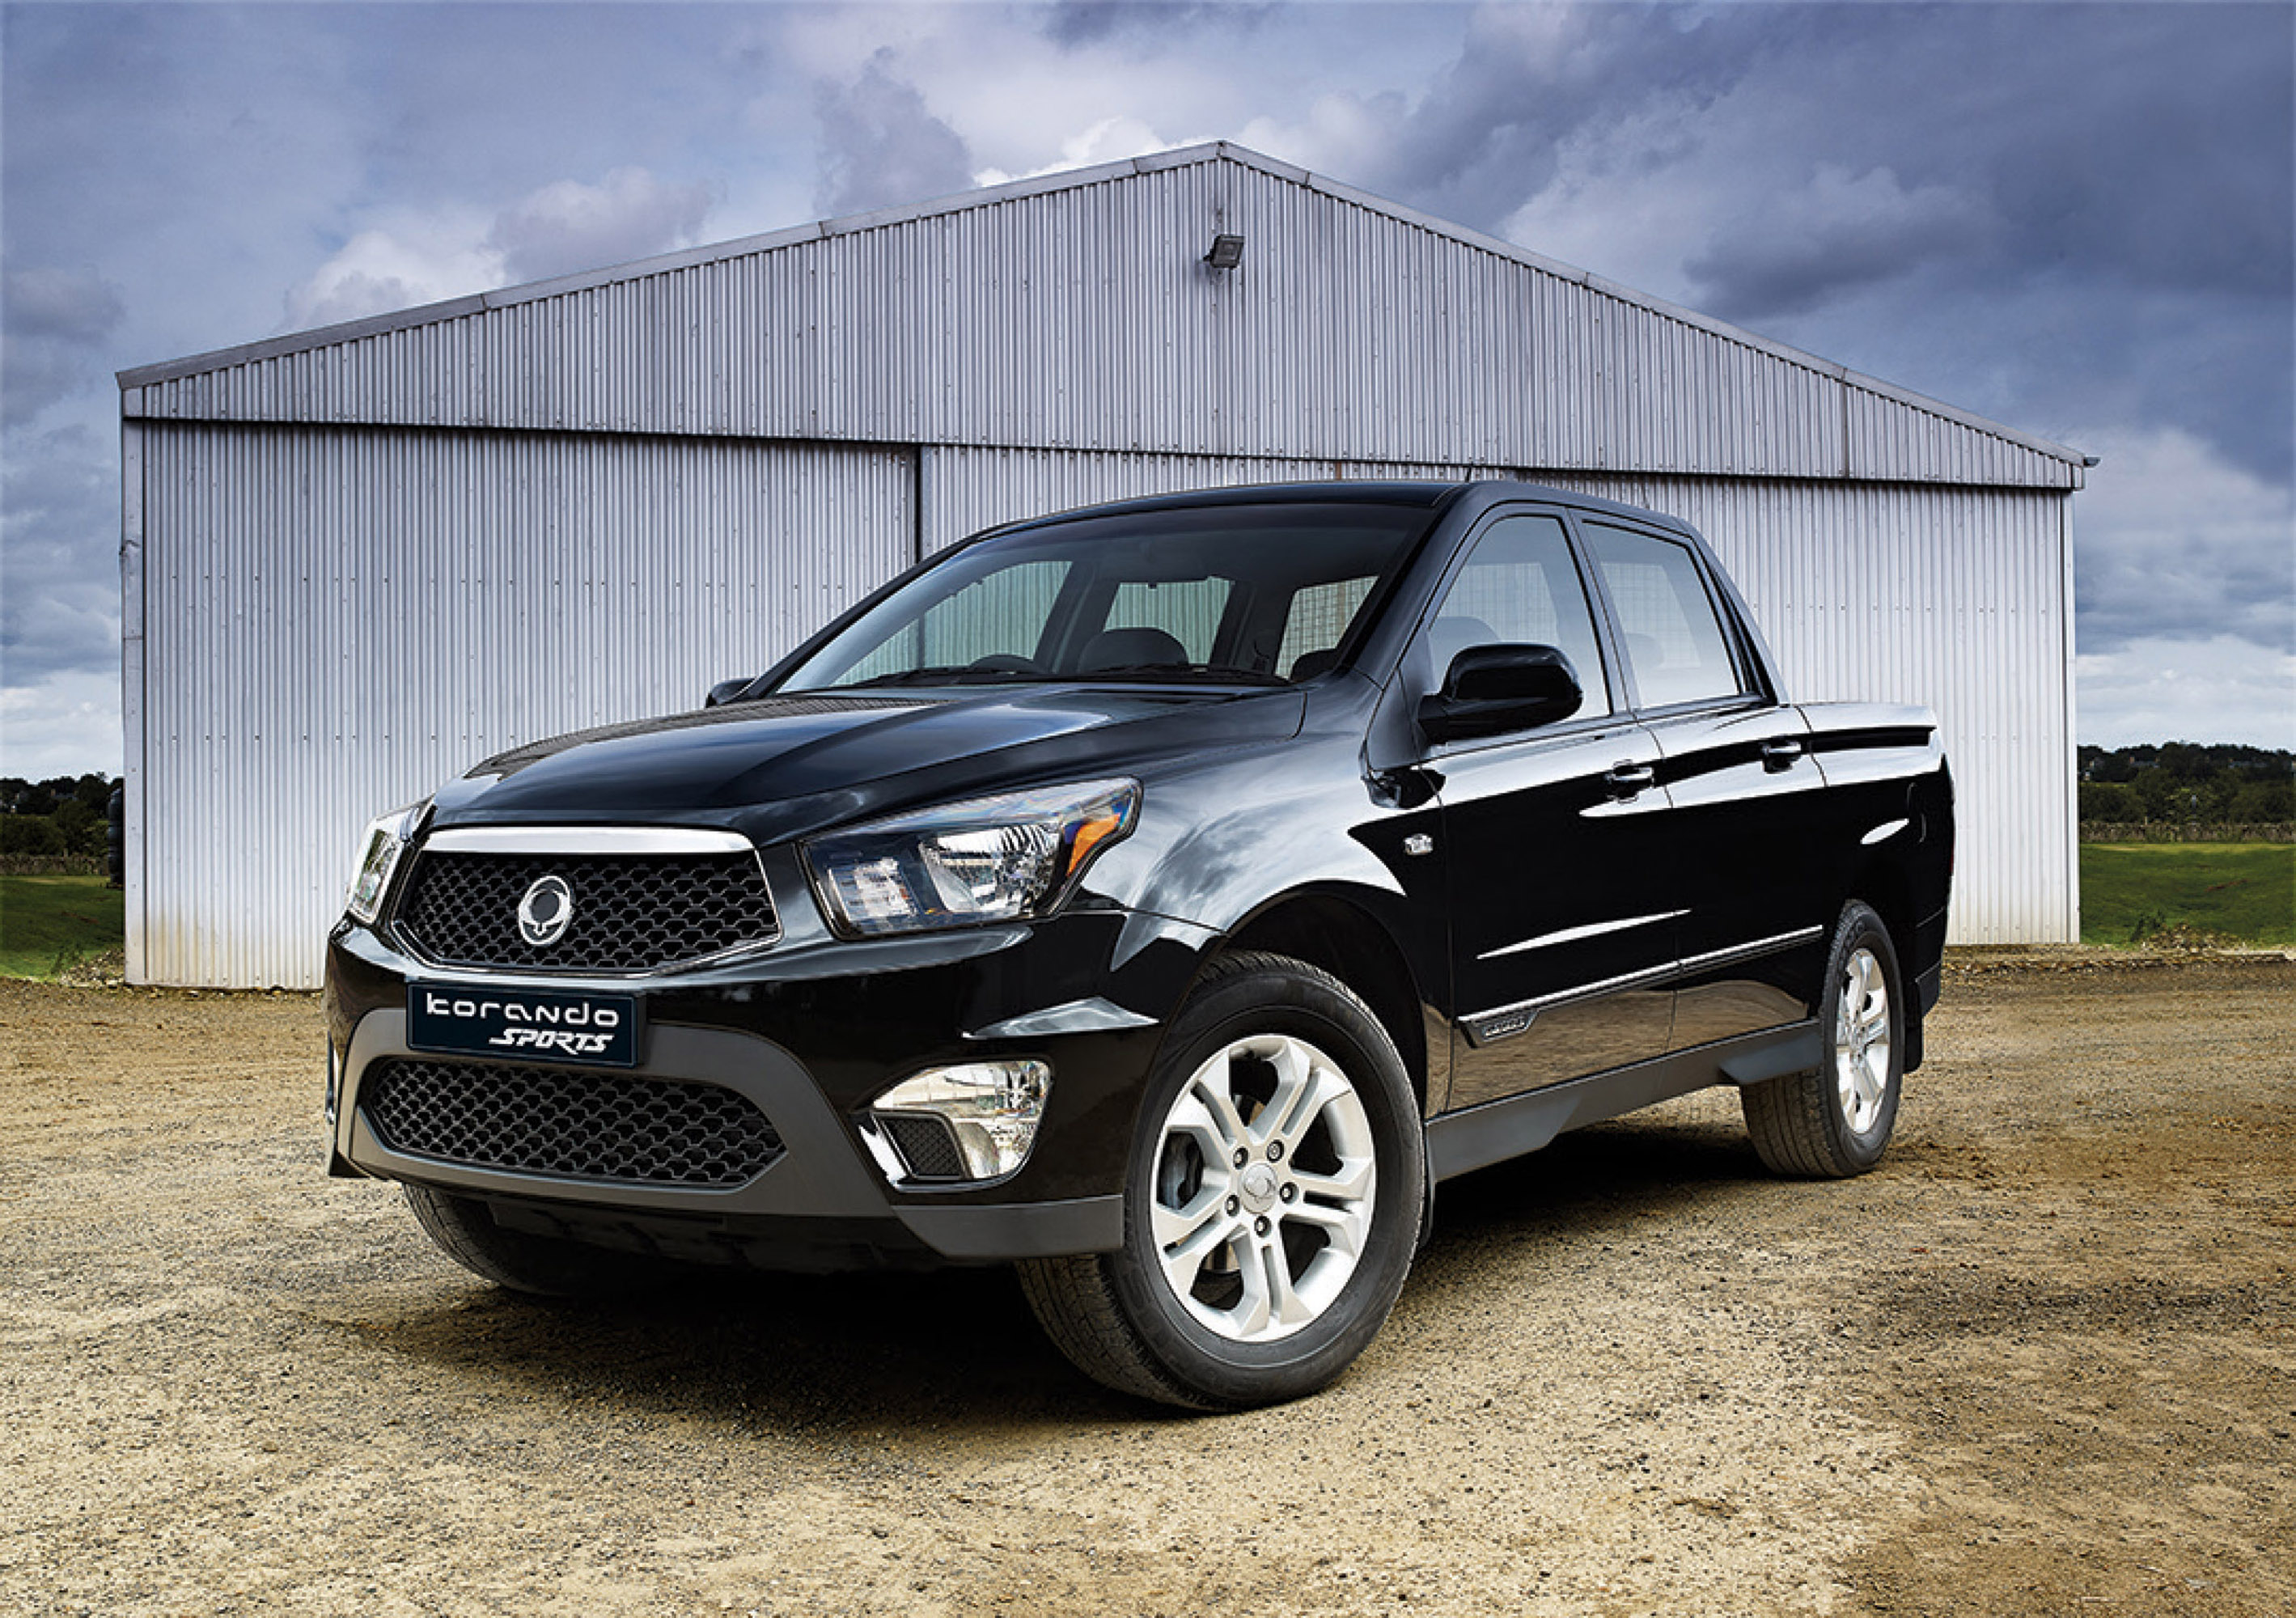 2013 Ssangyong Korando Sports Pick Up Picture 75578